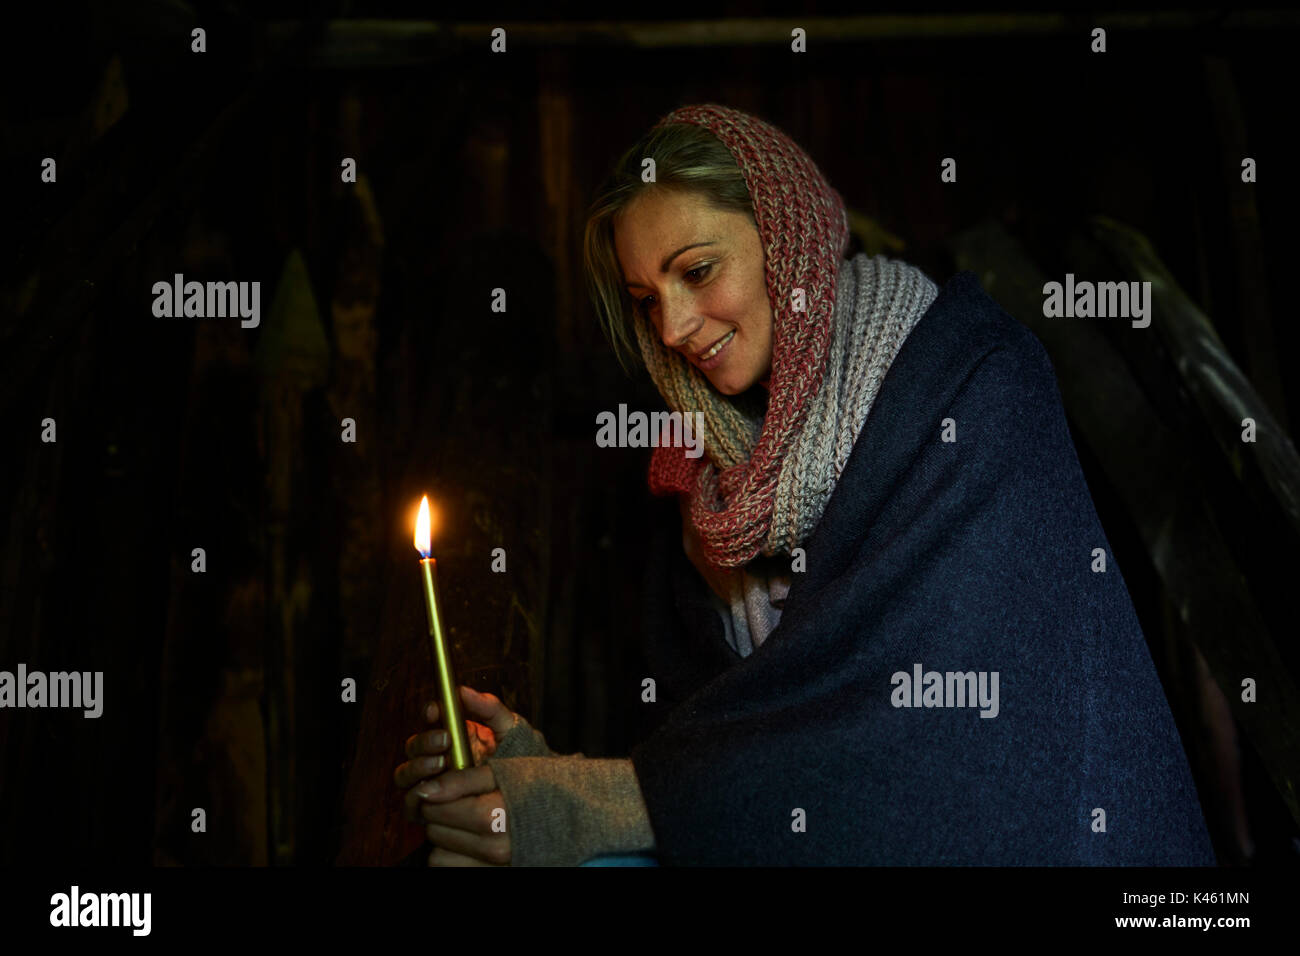 Blond woman holding a candle, smiling, side view, half-portrait, - Stock Image